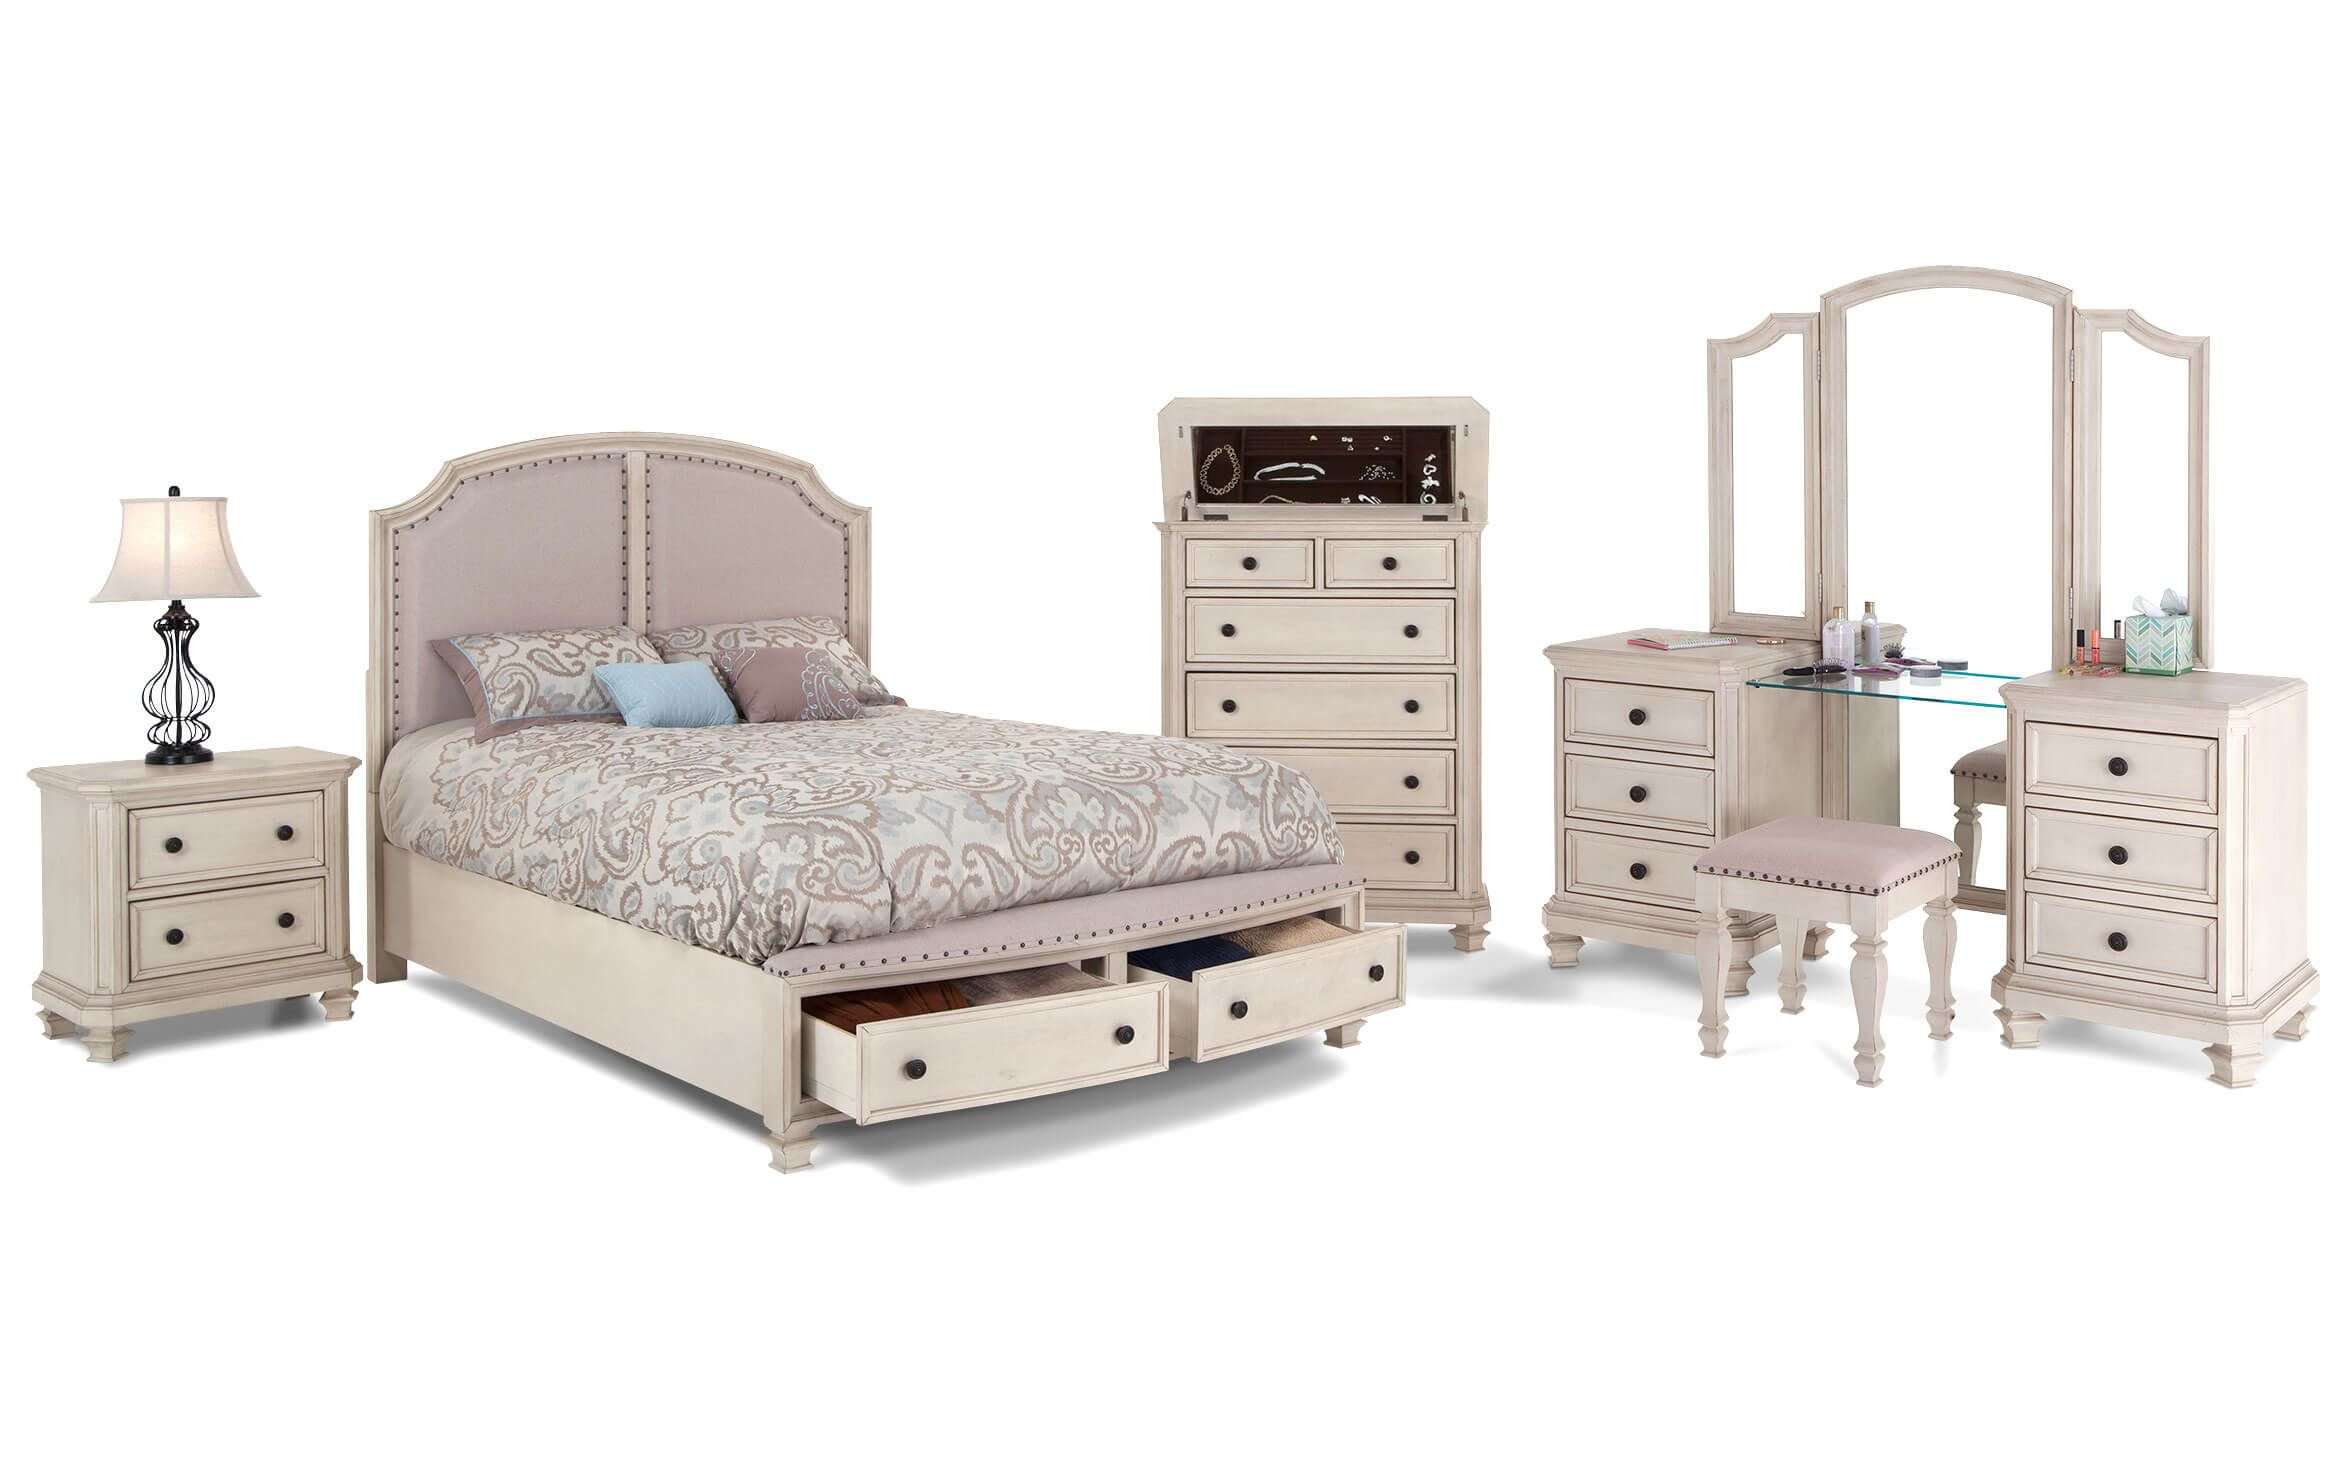 Euro Cottage Bedroom Set | Home decorating ideas | Discount ...